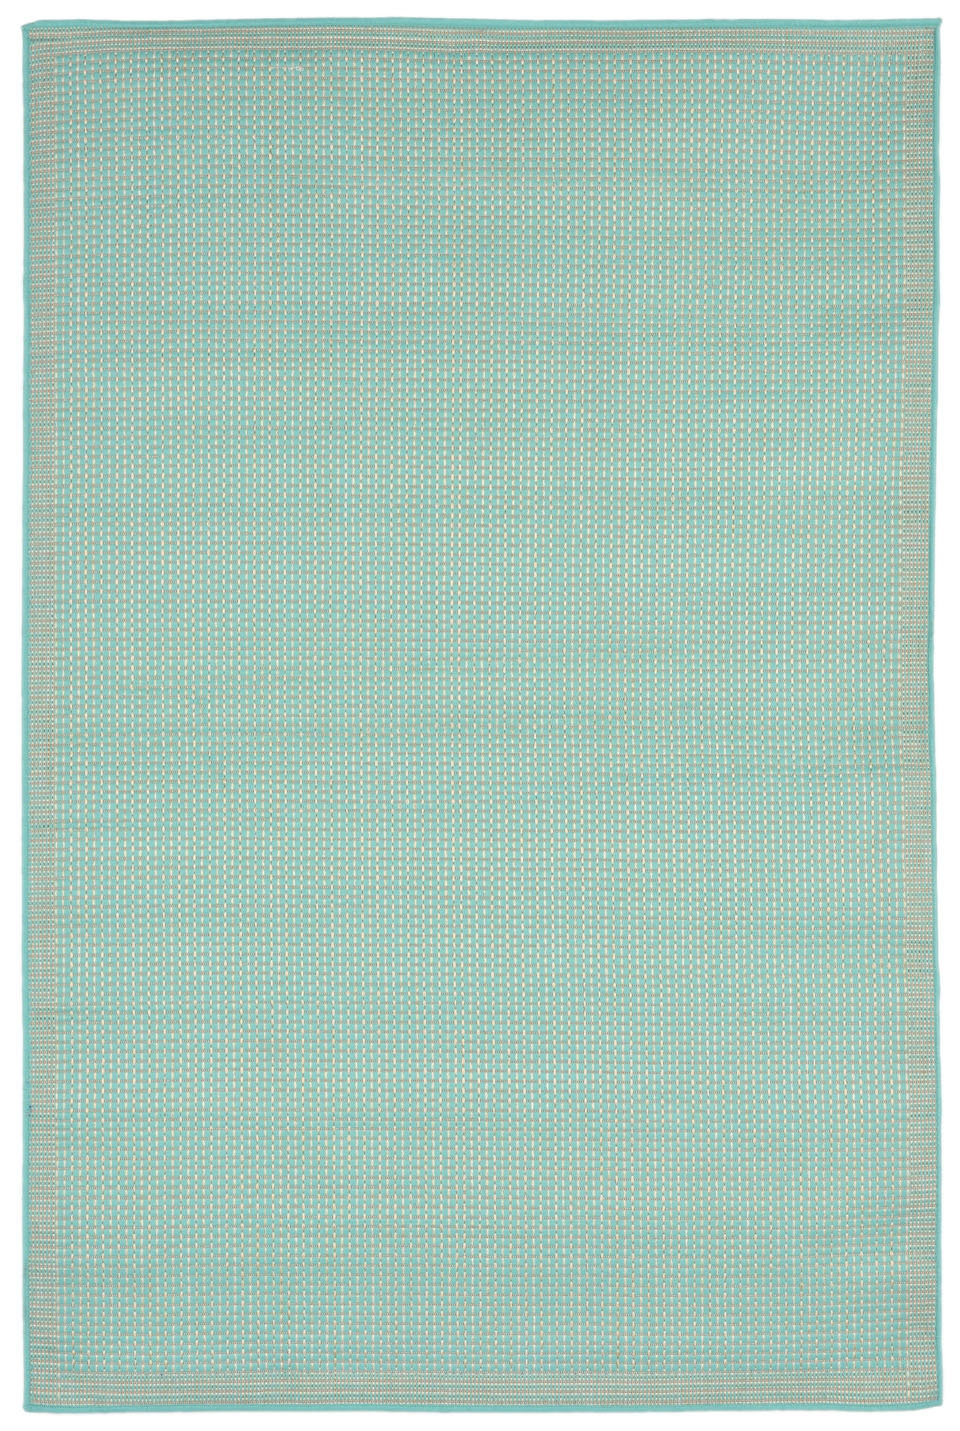 Transocean terrace 1762 93 texture turquoise rug for Terrace texture